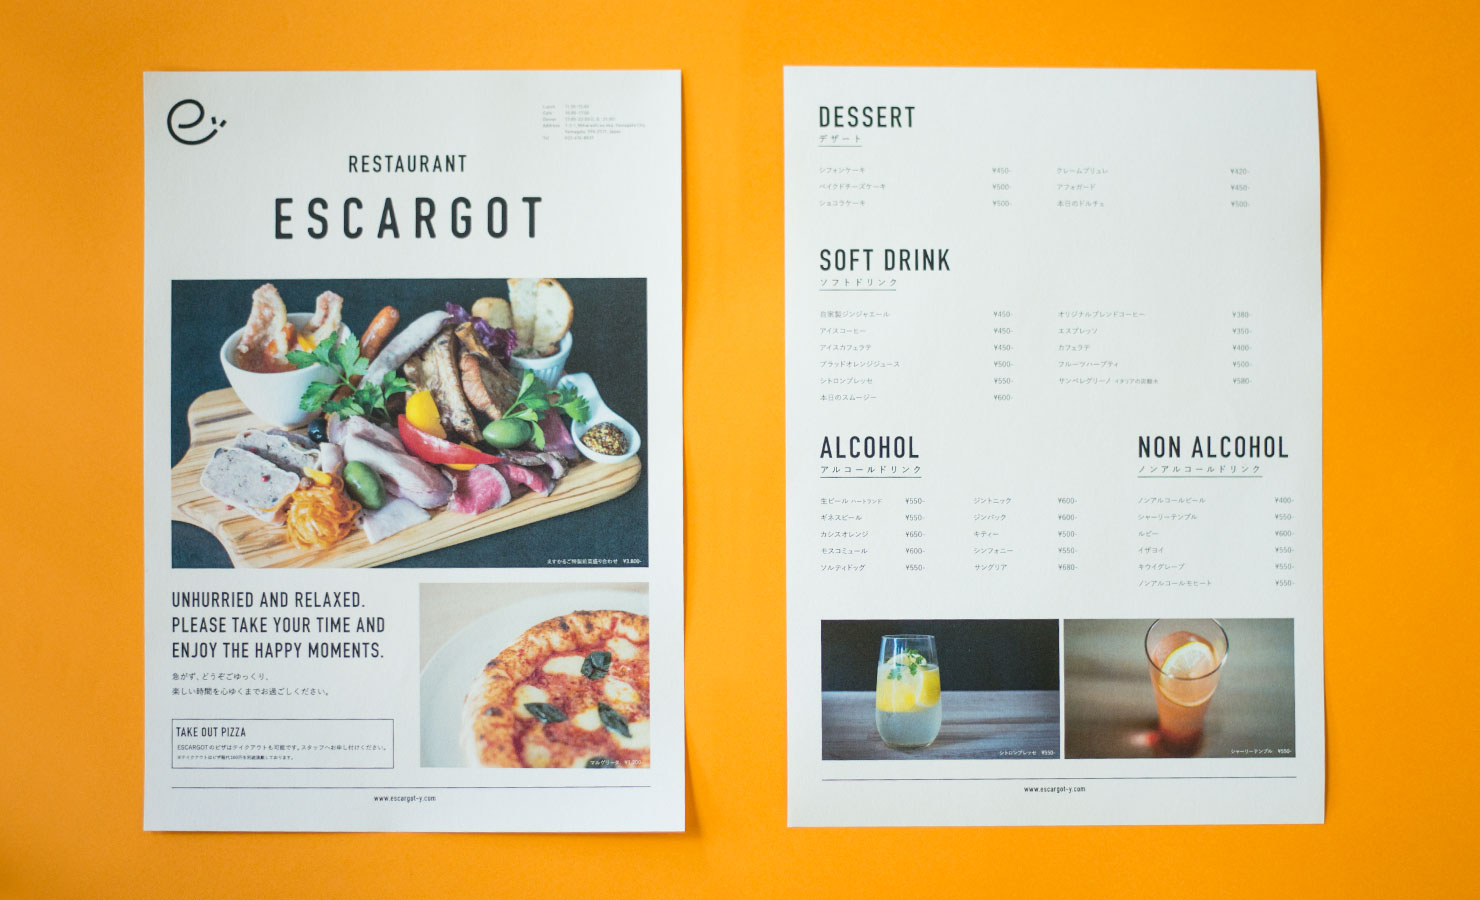 ESCARGOT MENU DESIGN